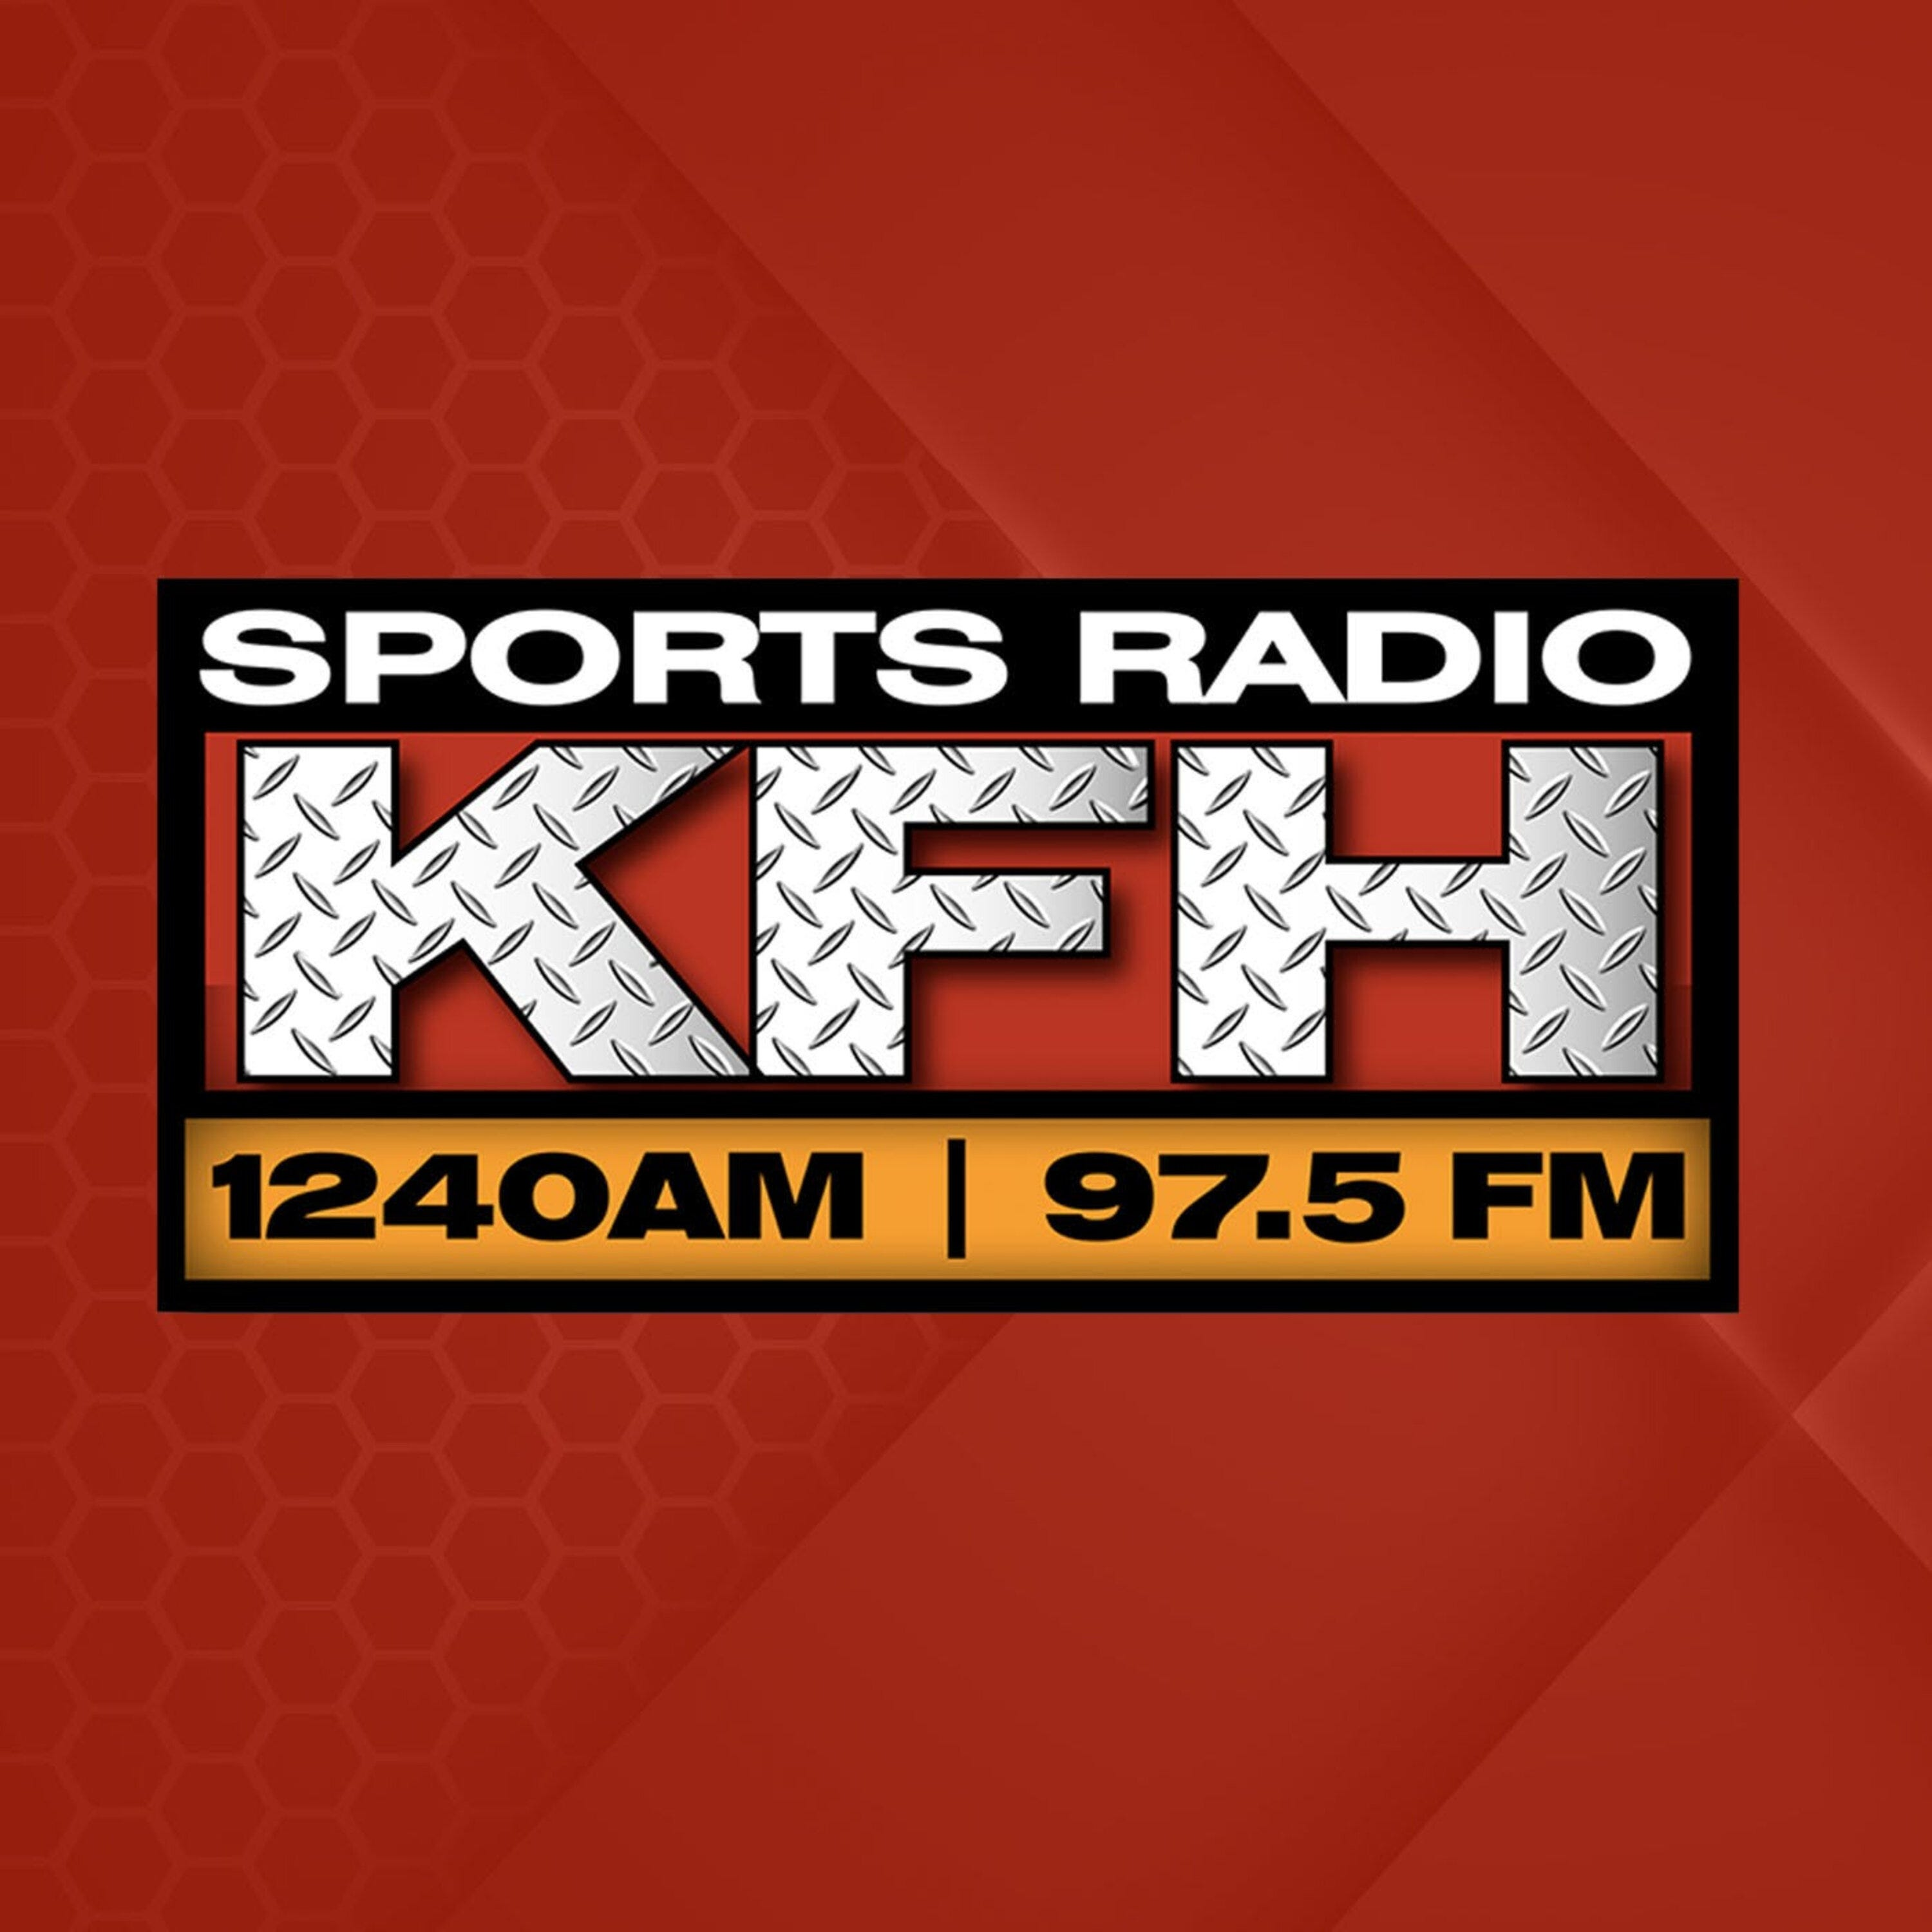 KFHFM: On Demand